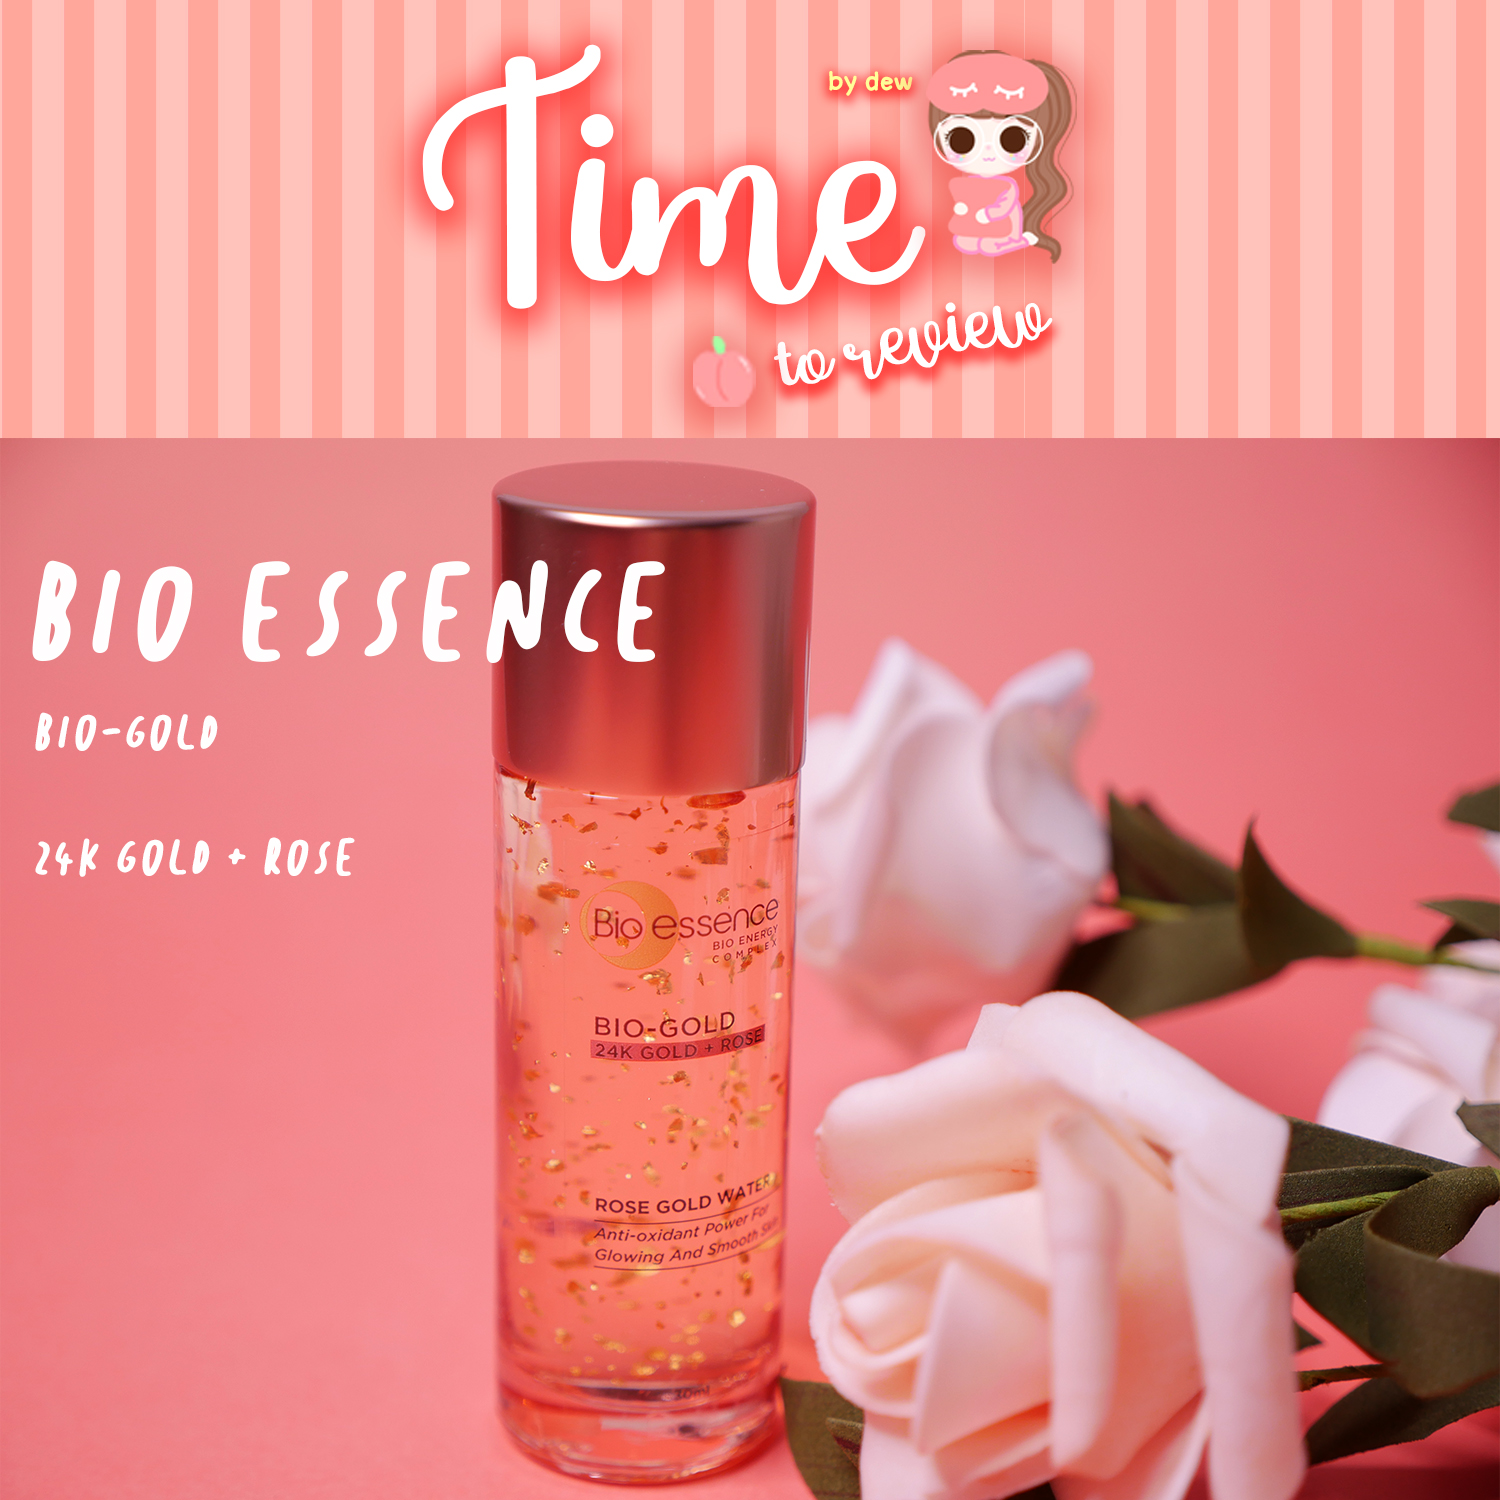 [Review]Bio Essence Bio-Gold Rose Gold Water